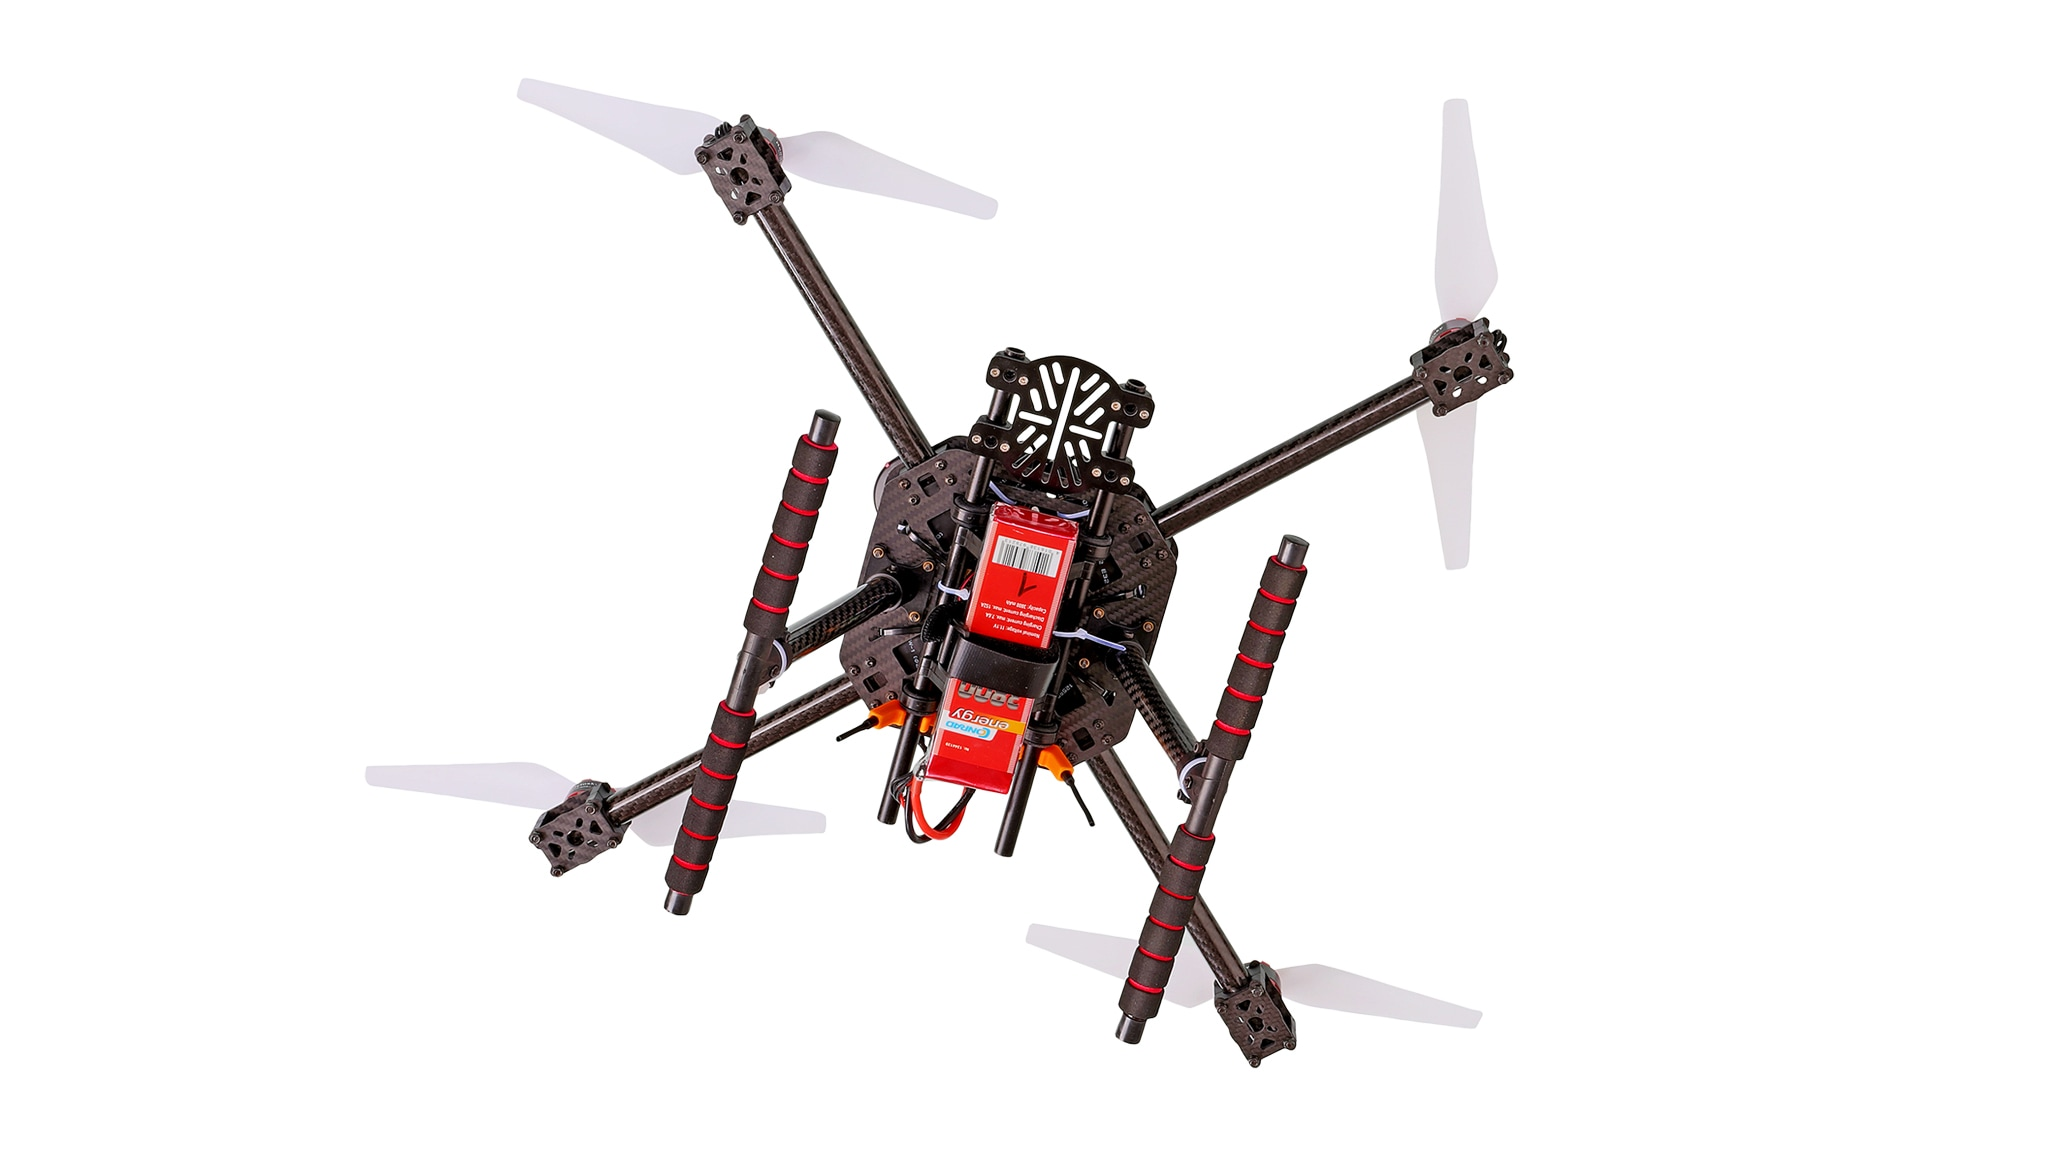 HoverGames Drone Kit